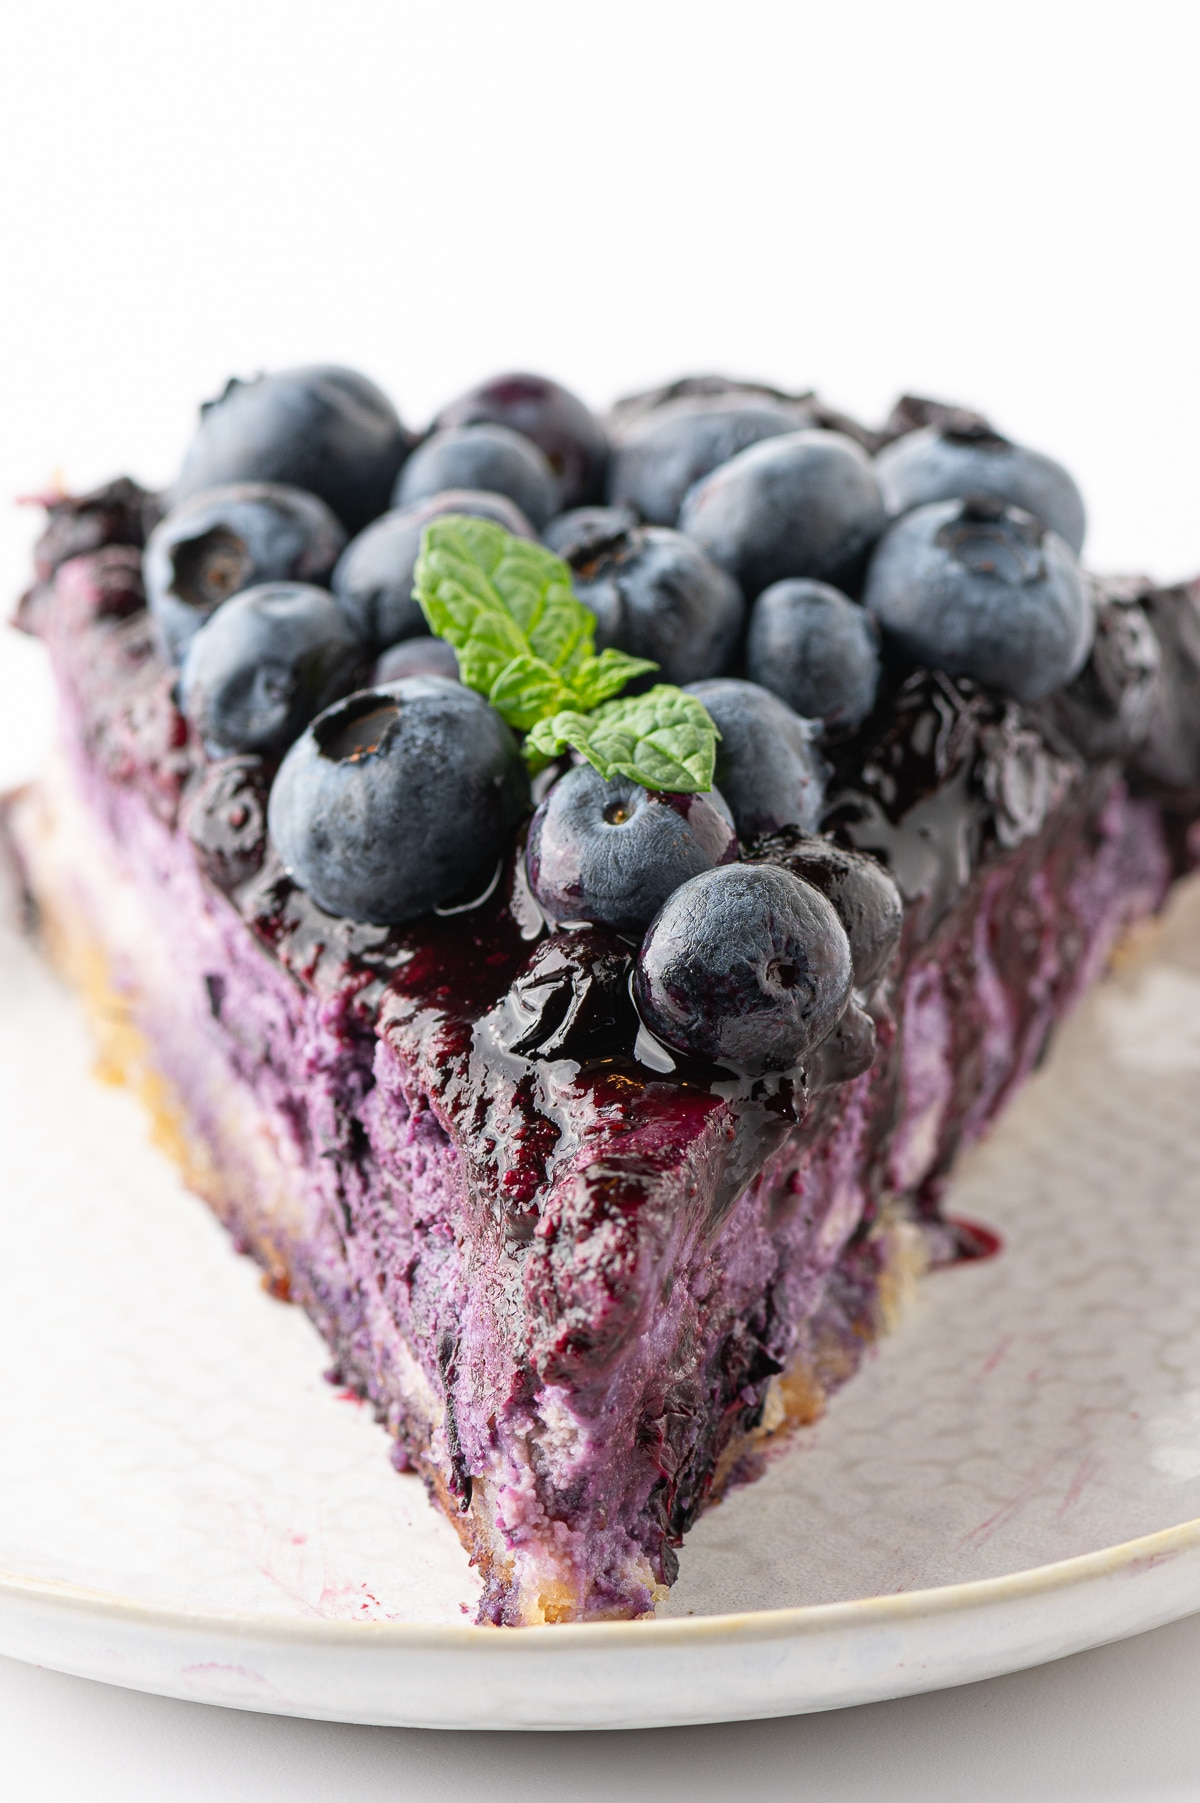 Bright violet colored low carb blueberry cheesecake topped with fresh berries, blueberry drizzle and a sprig of fresh mint